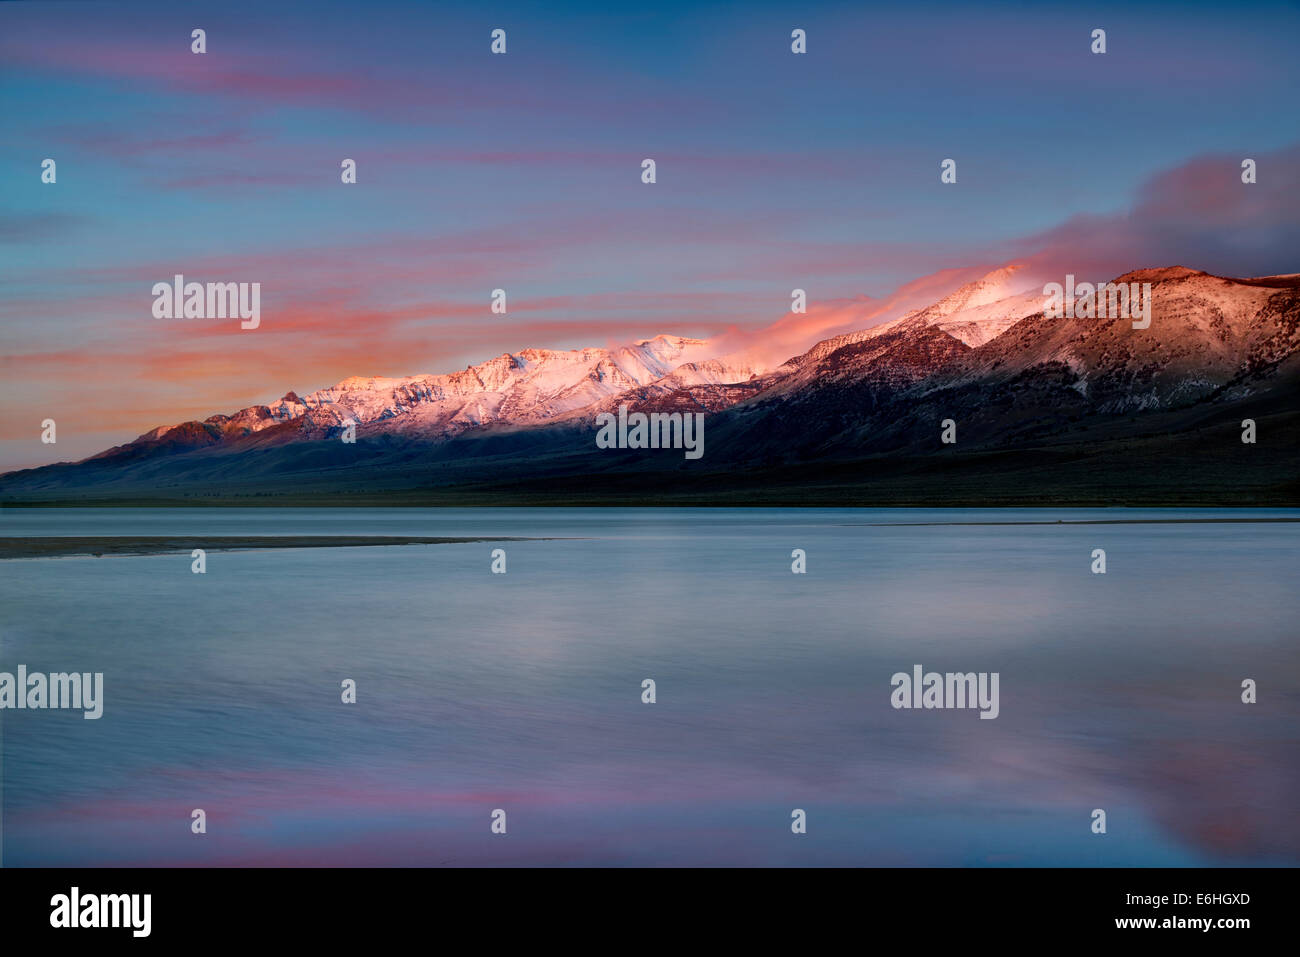 Mann Lake y Steens Mountain en Sunrise, Oregón Imagen De Stock